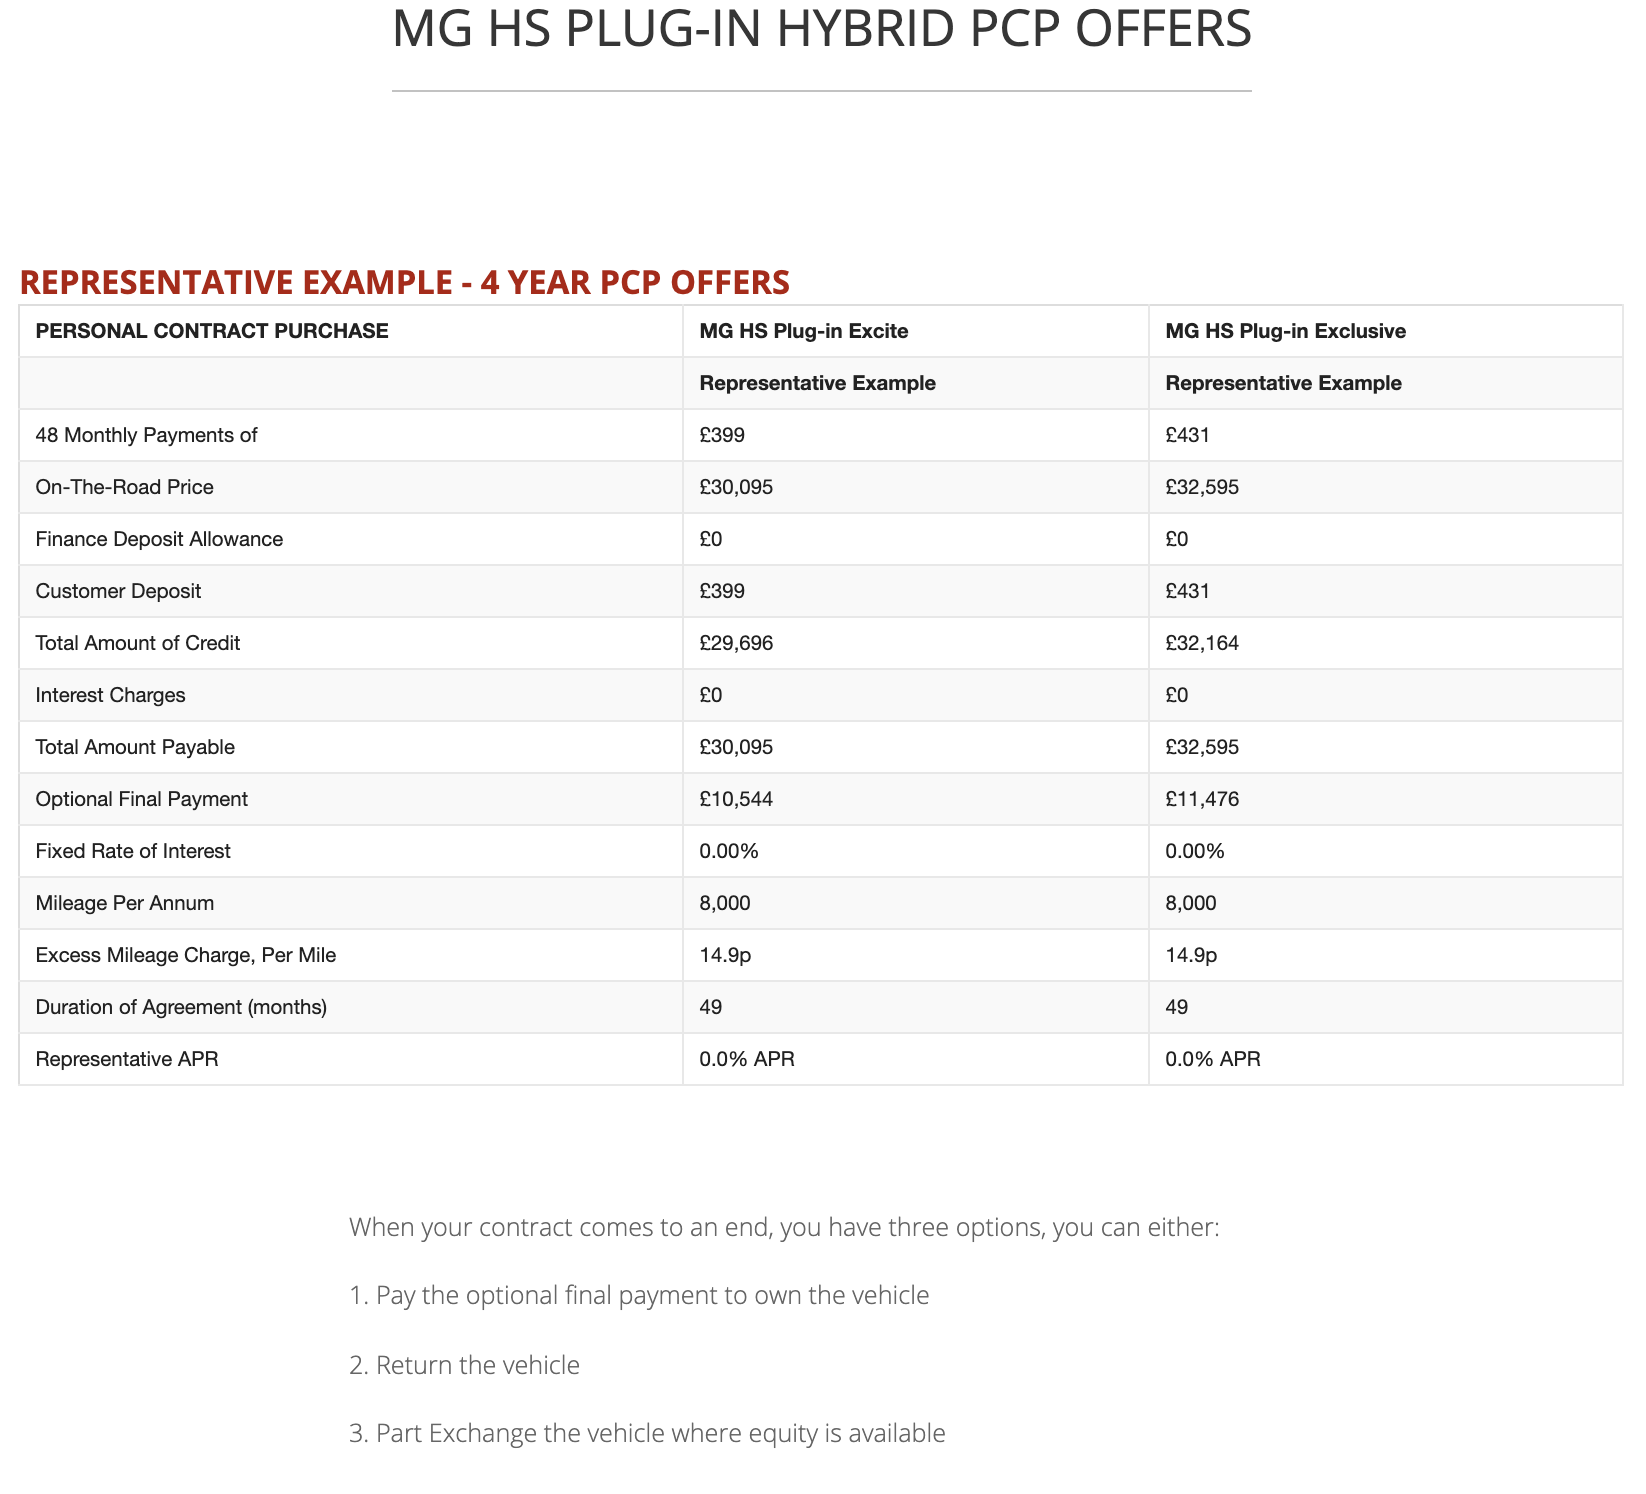 HS PLUG-IN Q2 2021 FINANCE PCP OFFER TABLE